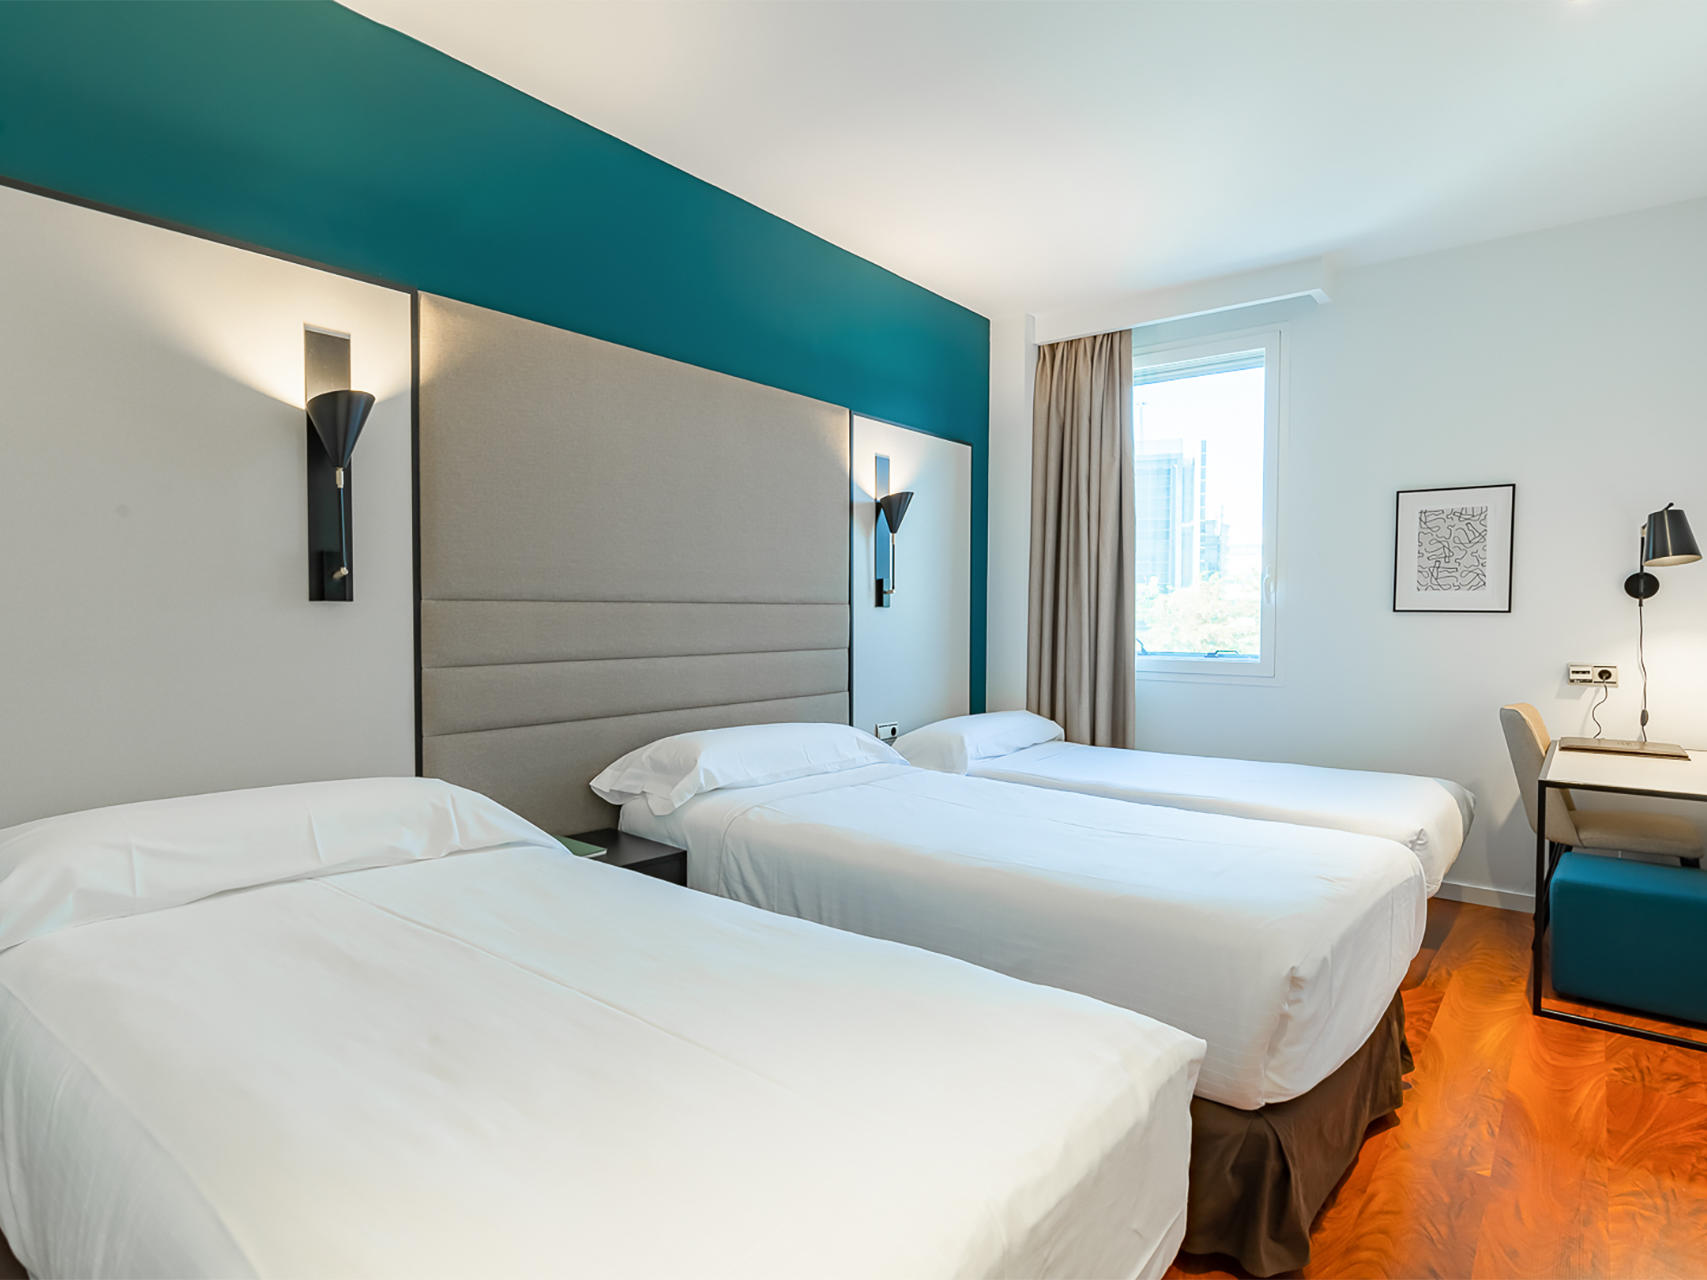 Triple Room at Hotel Amura Alcobendas near Madrid Airport